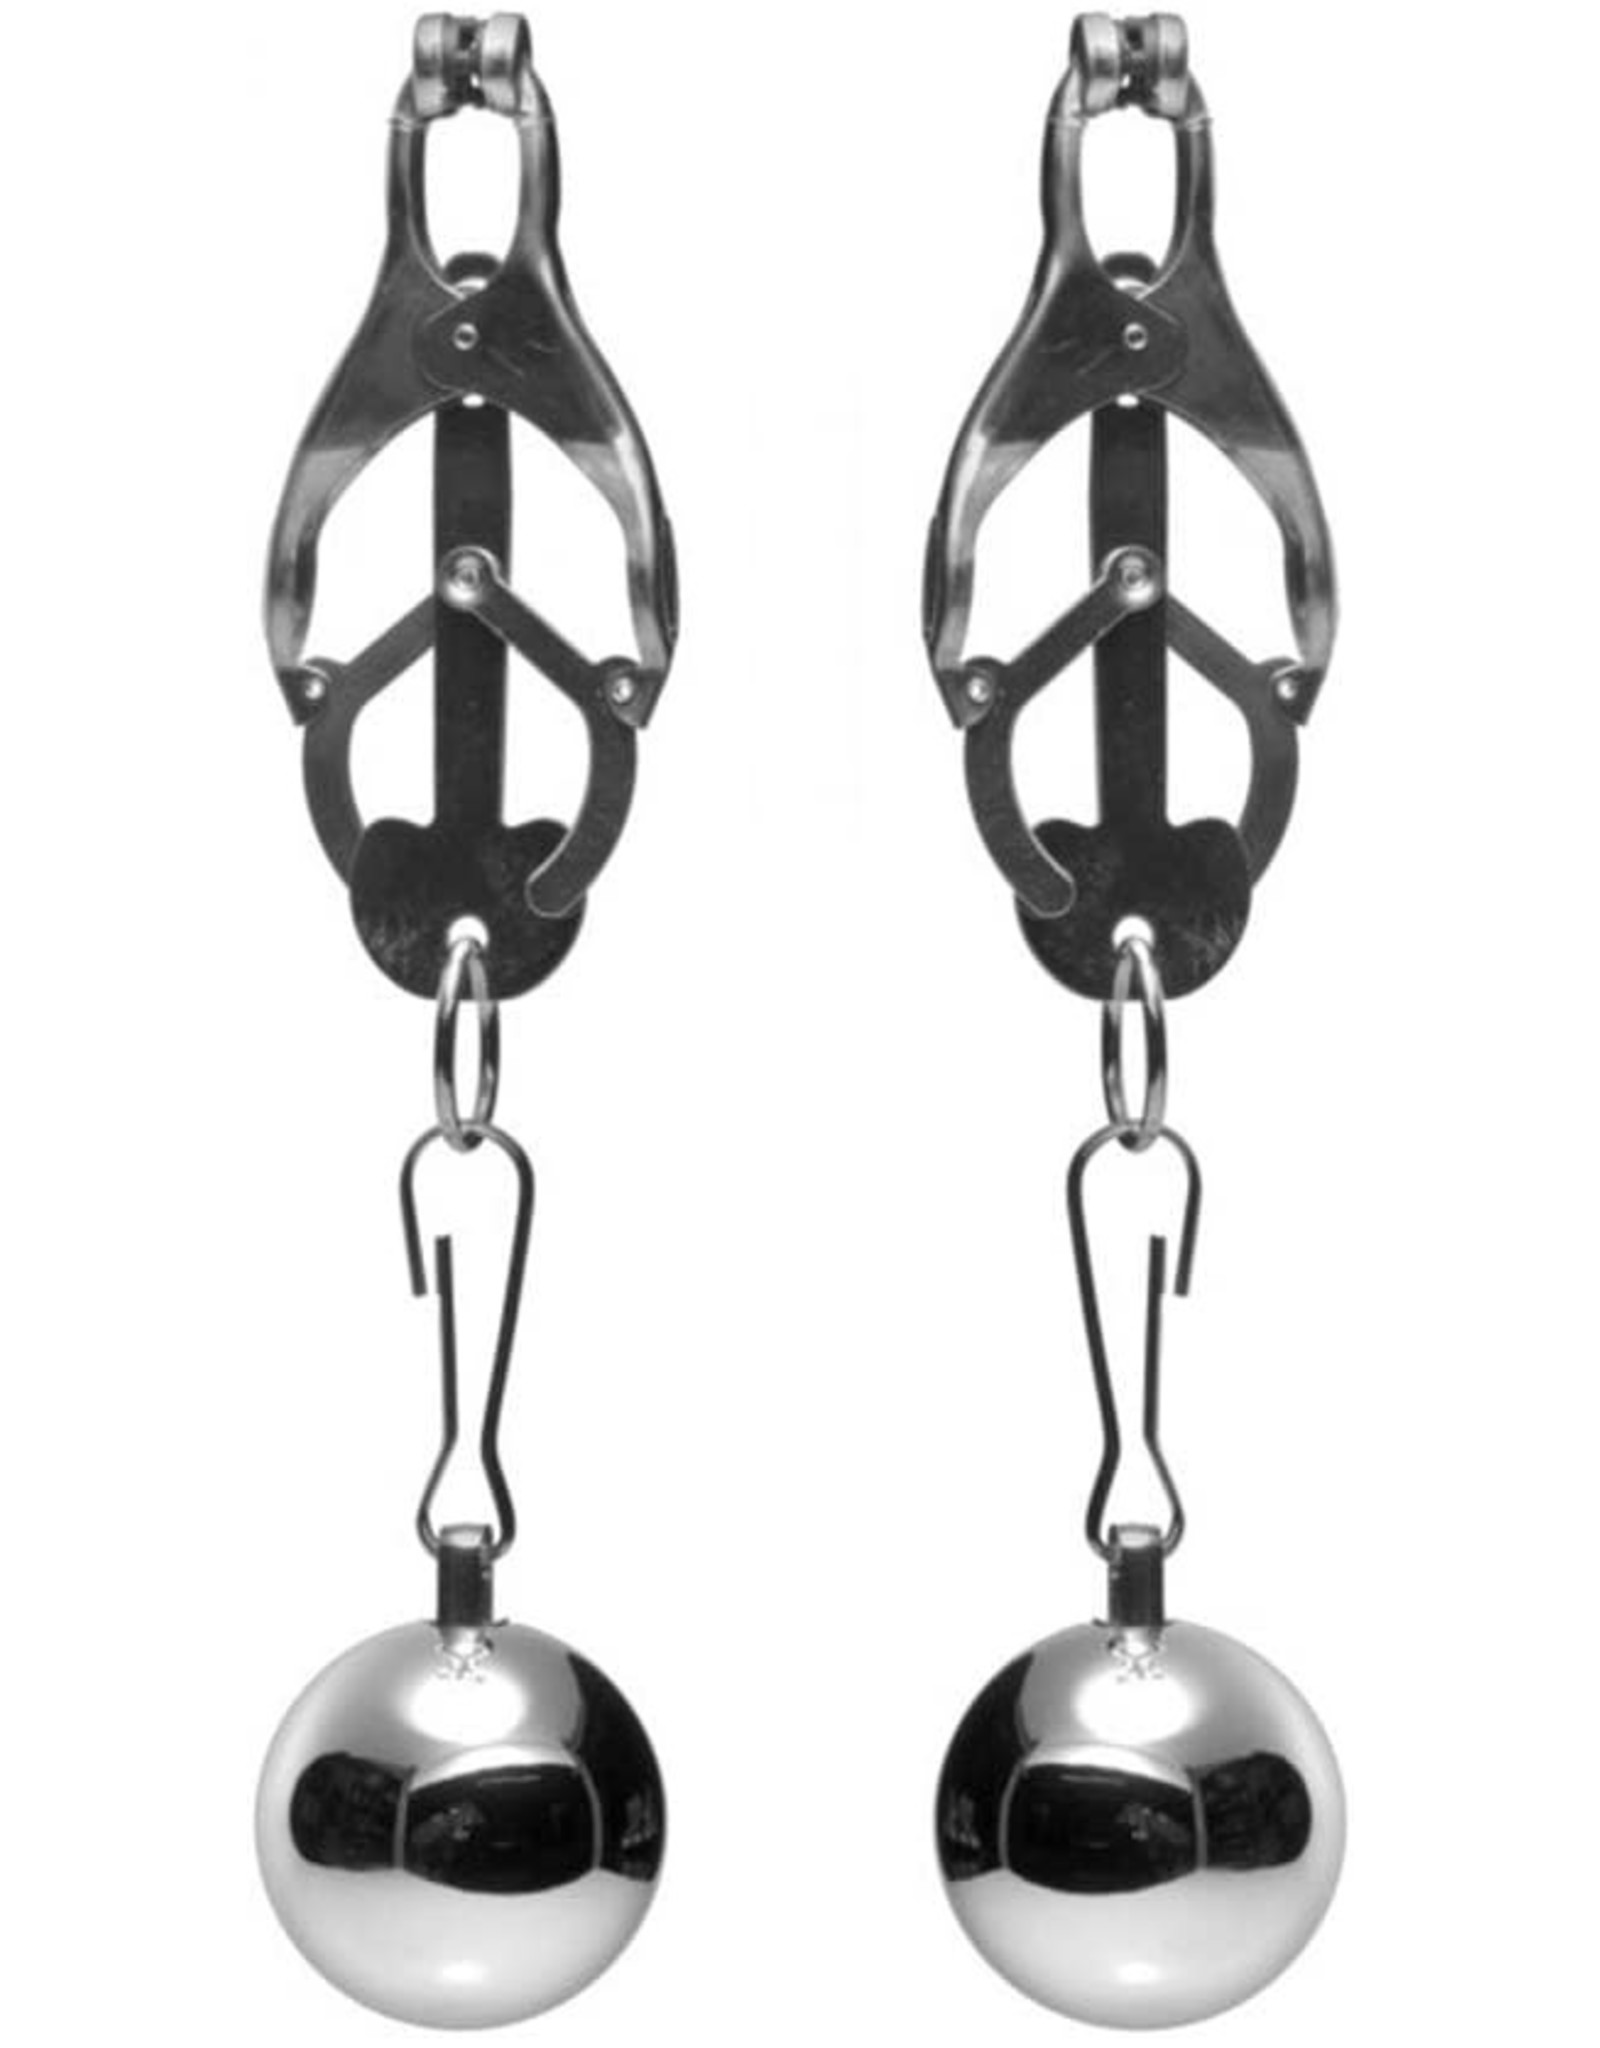 Master Series Master Series Deviant Monarch Weighted Nipple Clamps